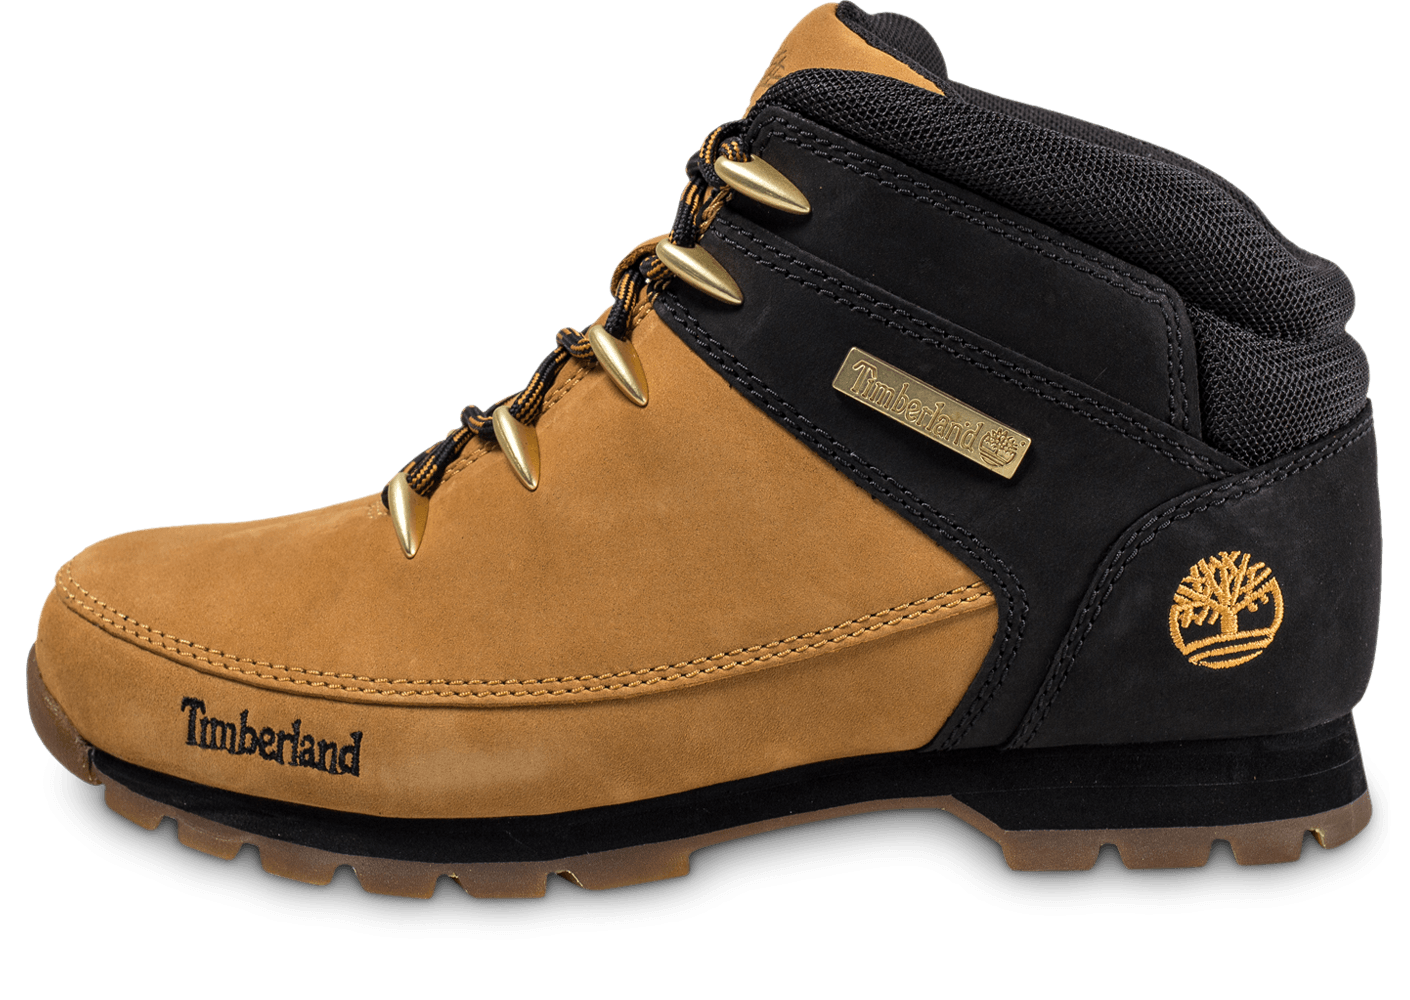 timberland eurosprint hiker beige et noire chaussures homme chausport. Black Bedroom Furniture Sets. Home Design Ideas